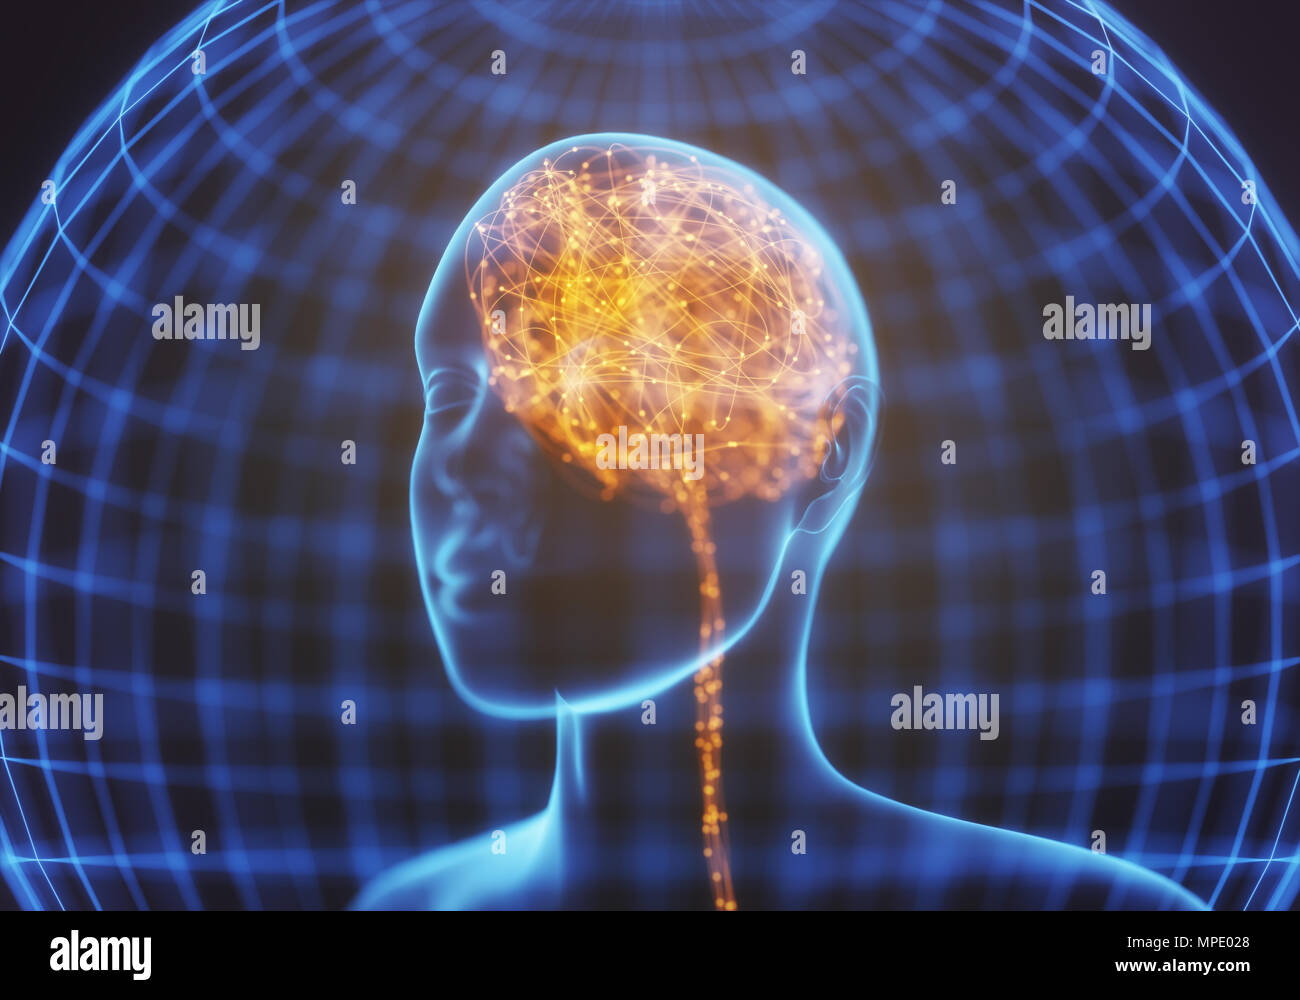 3D illustration. X-ray of the head and human brain in concept of neural connections and electrical pulses. Sparkles inside the brain. Powerful mind. - Stock Image